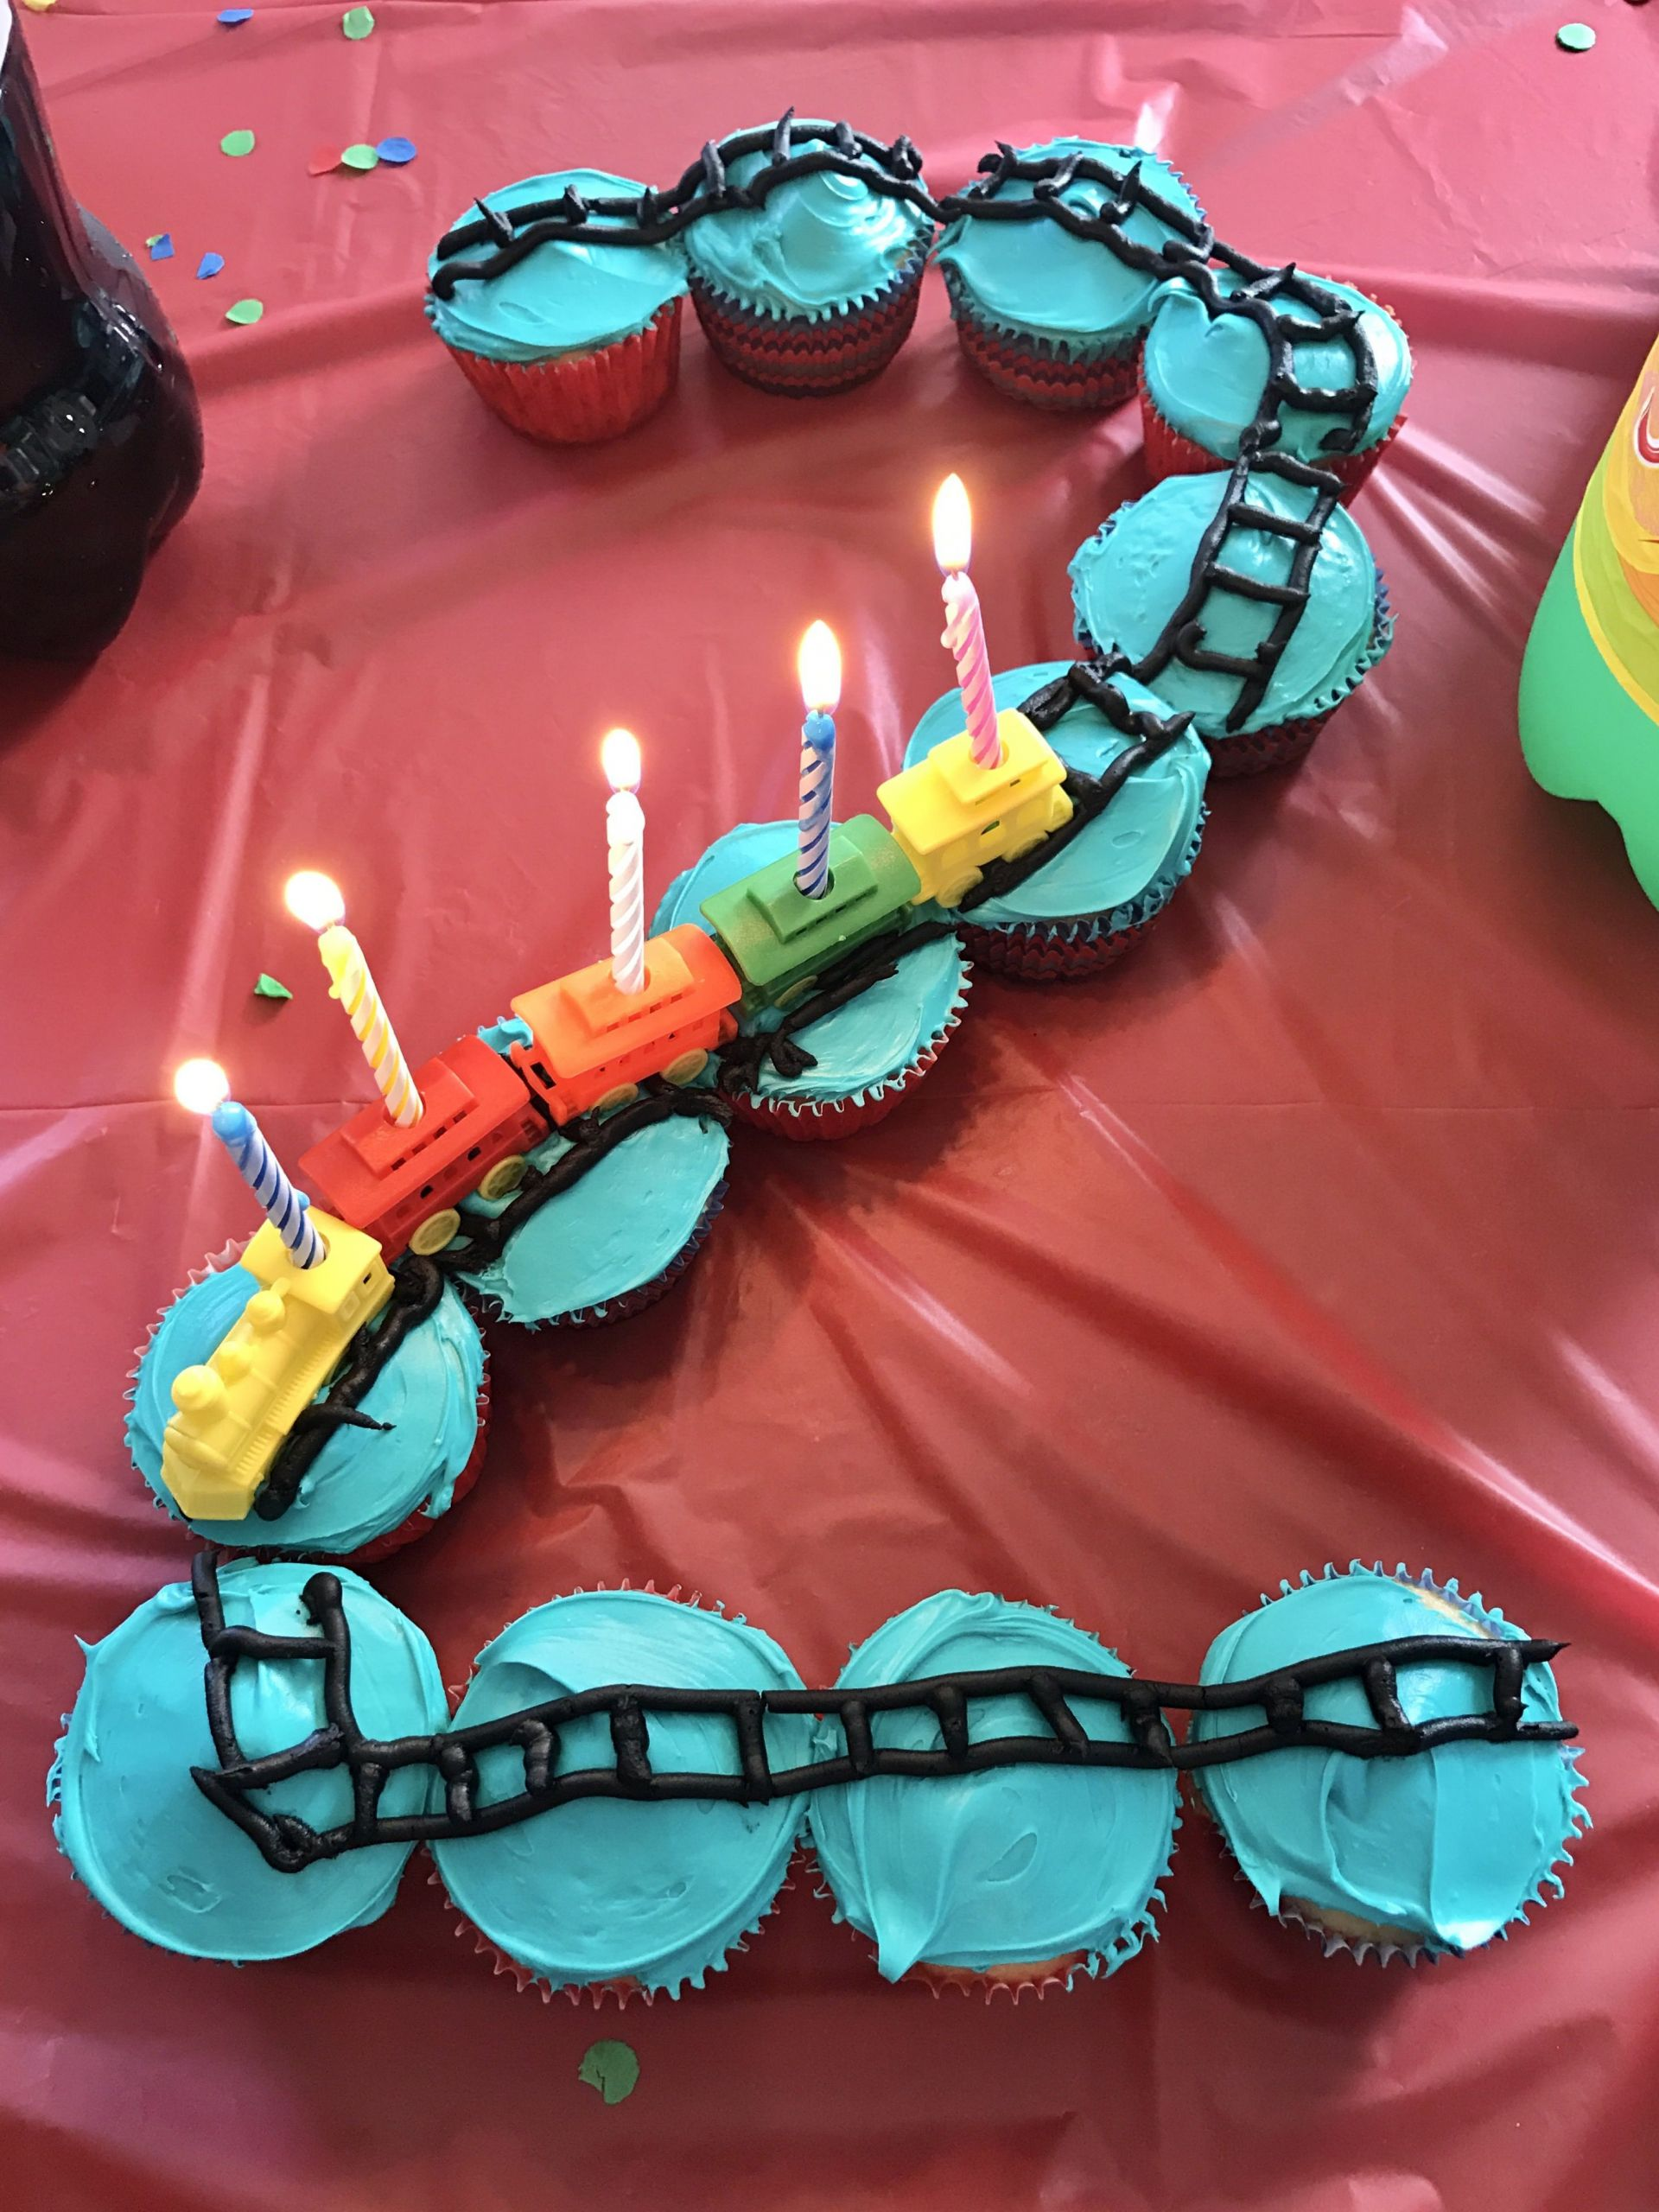 Two Years Old Birthday Party Ideas  Train theme birthday party cupcakes for a two year old